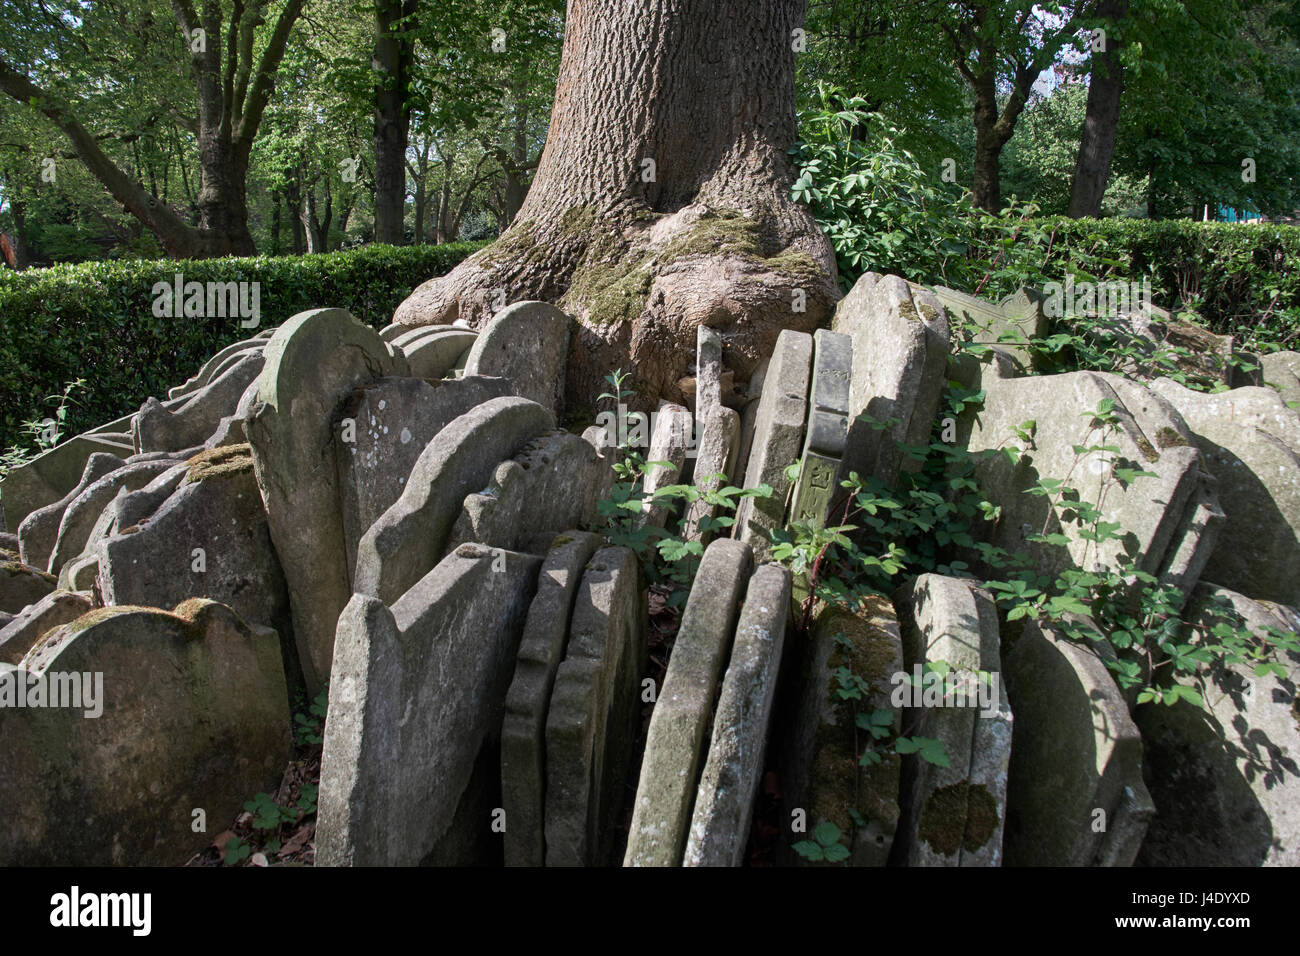 Hardy Tree in churchyard of St Pancras Old Church, London; monument created from tombstones disturbed during the - Stock Image